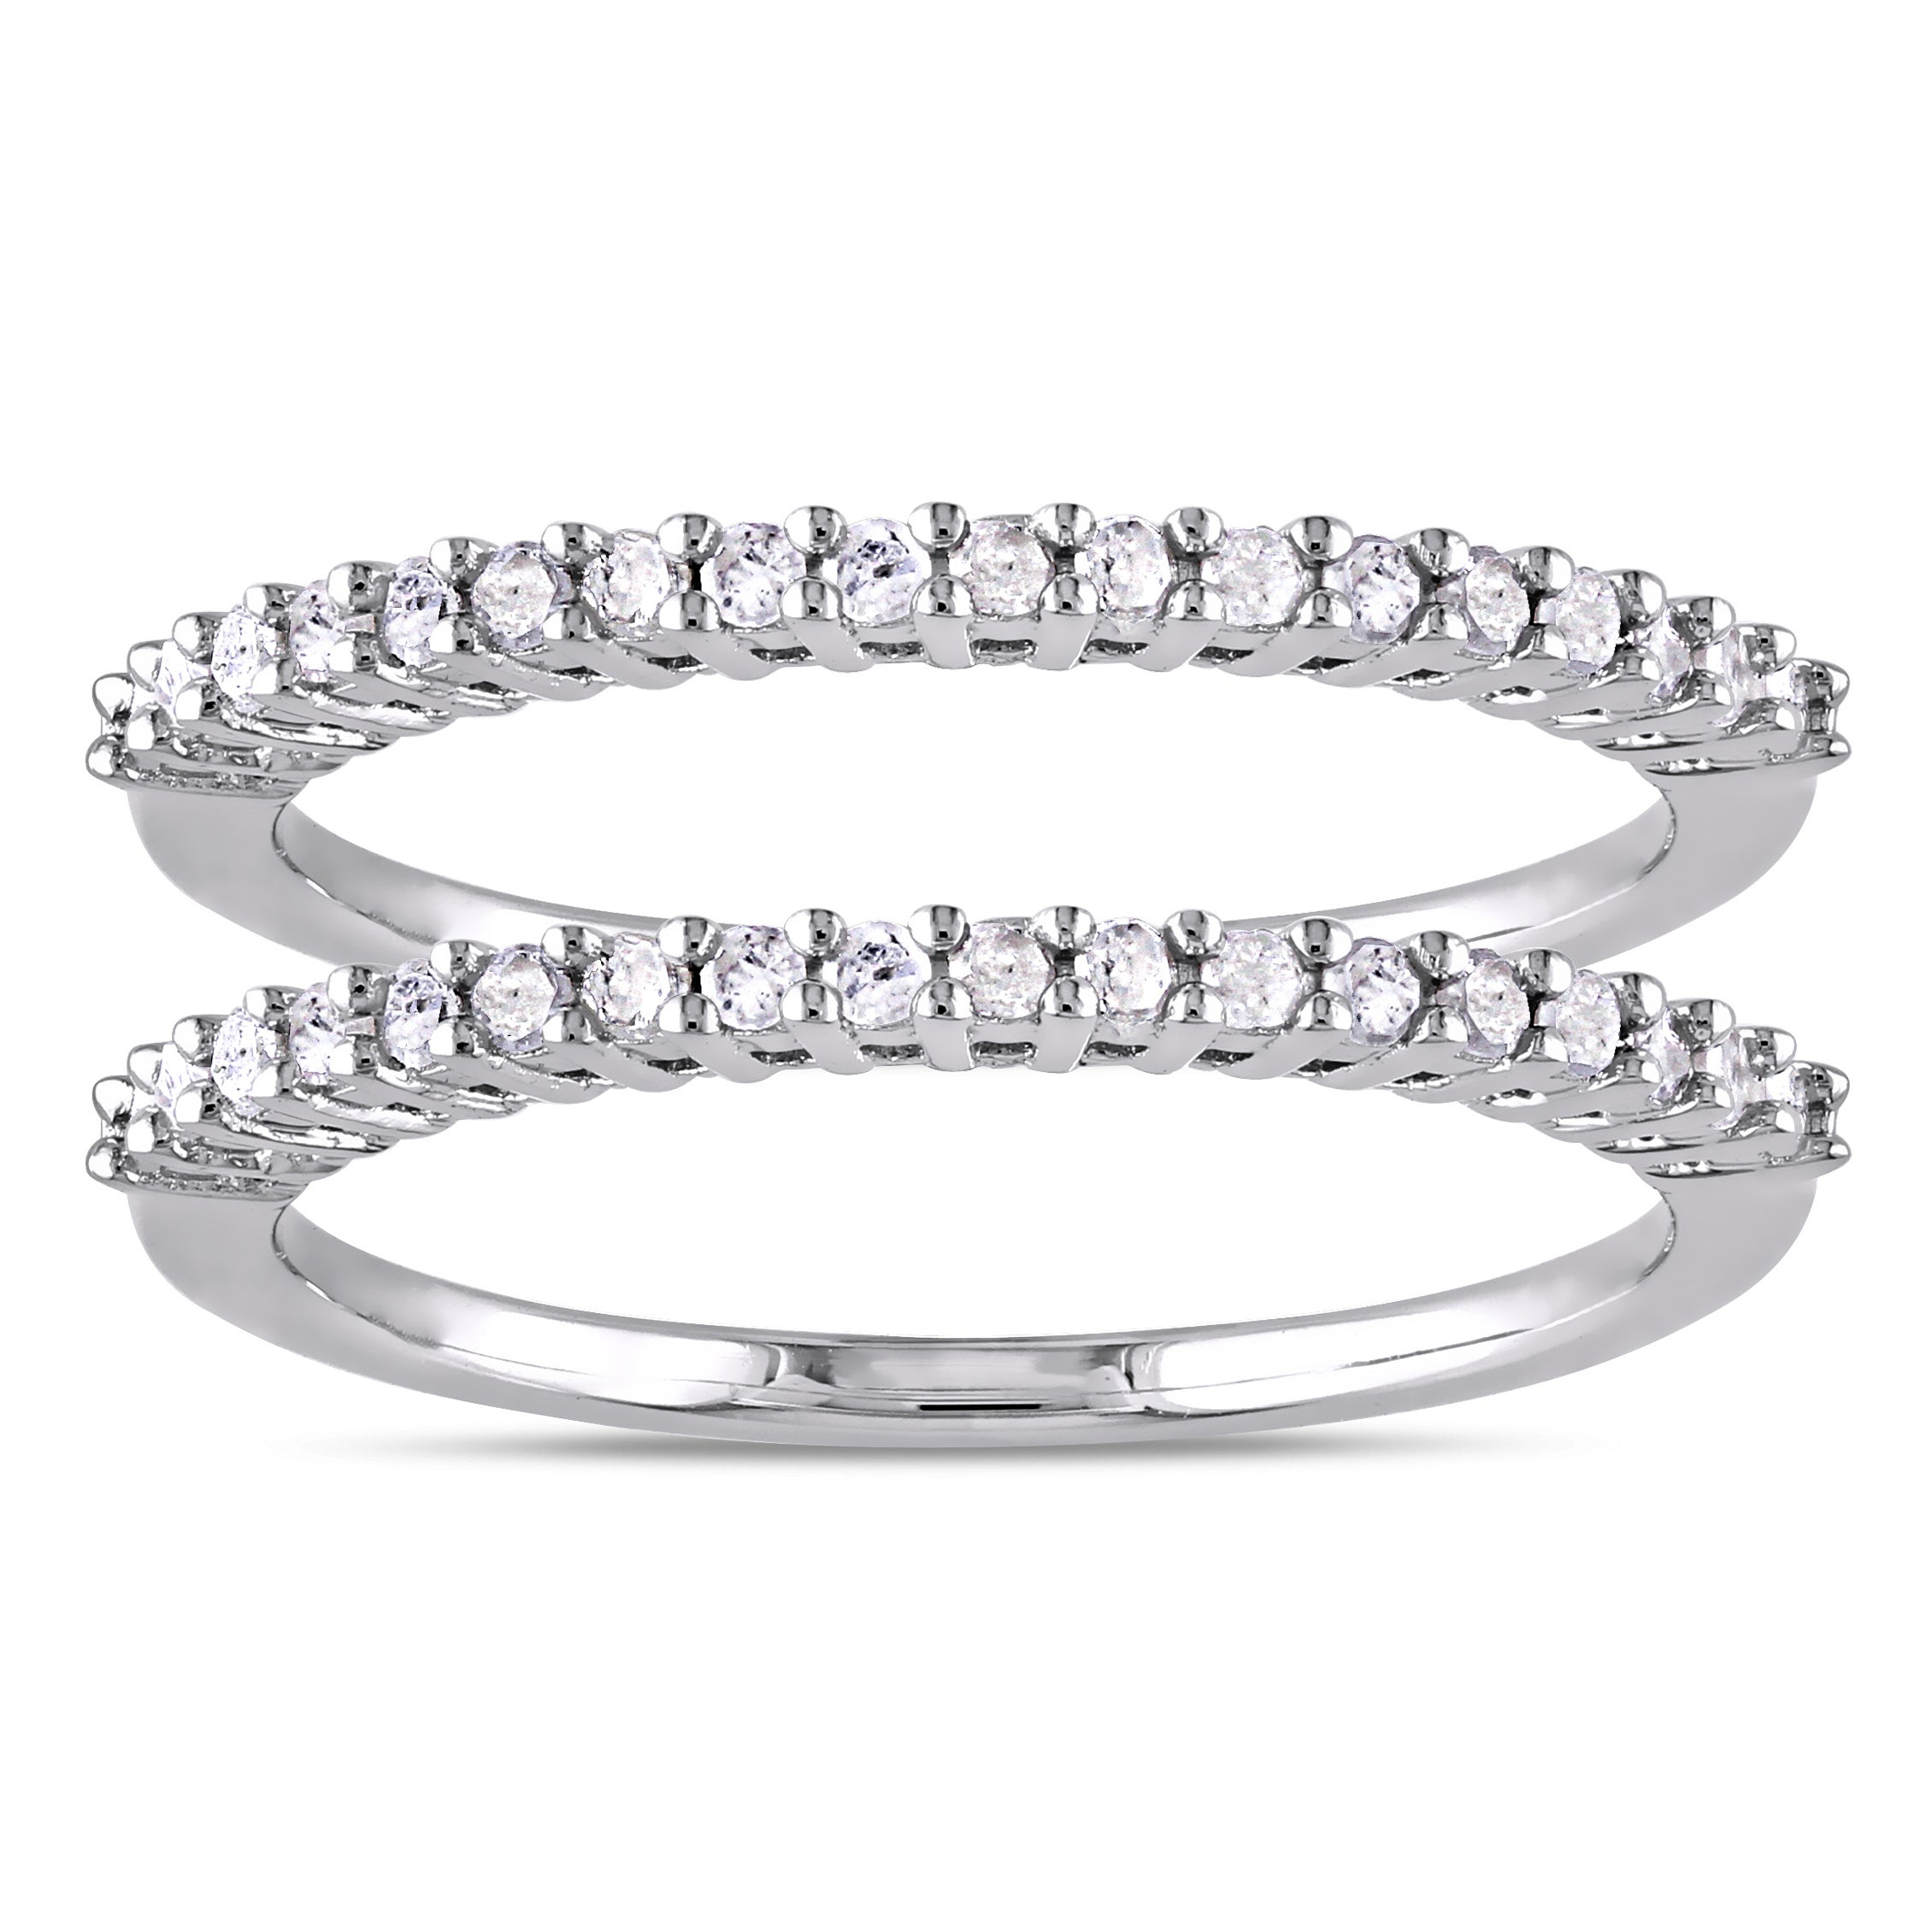 overstock rings over stonez set chip bridal jewelry sterling ring watches free engagement icz cubic shipping orders on diamond zirconia silver product